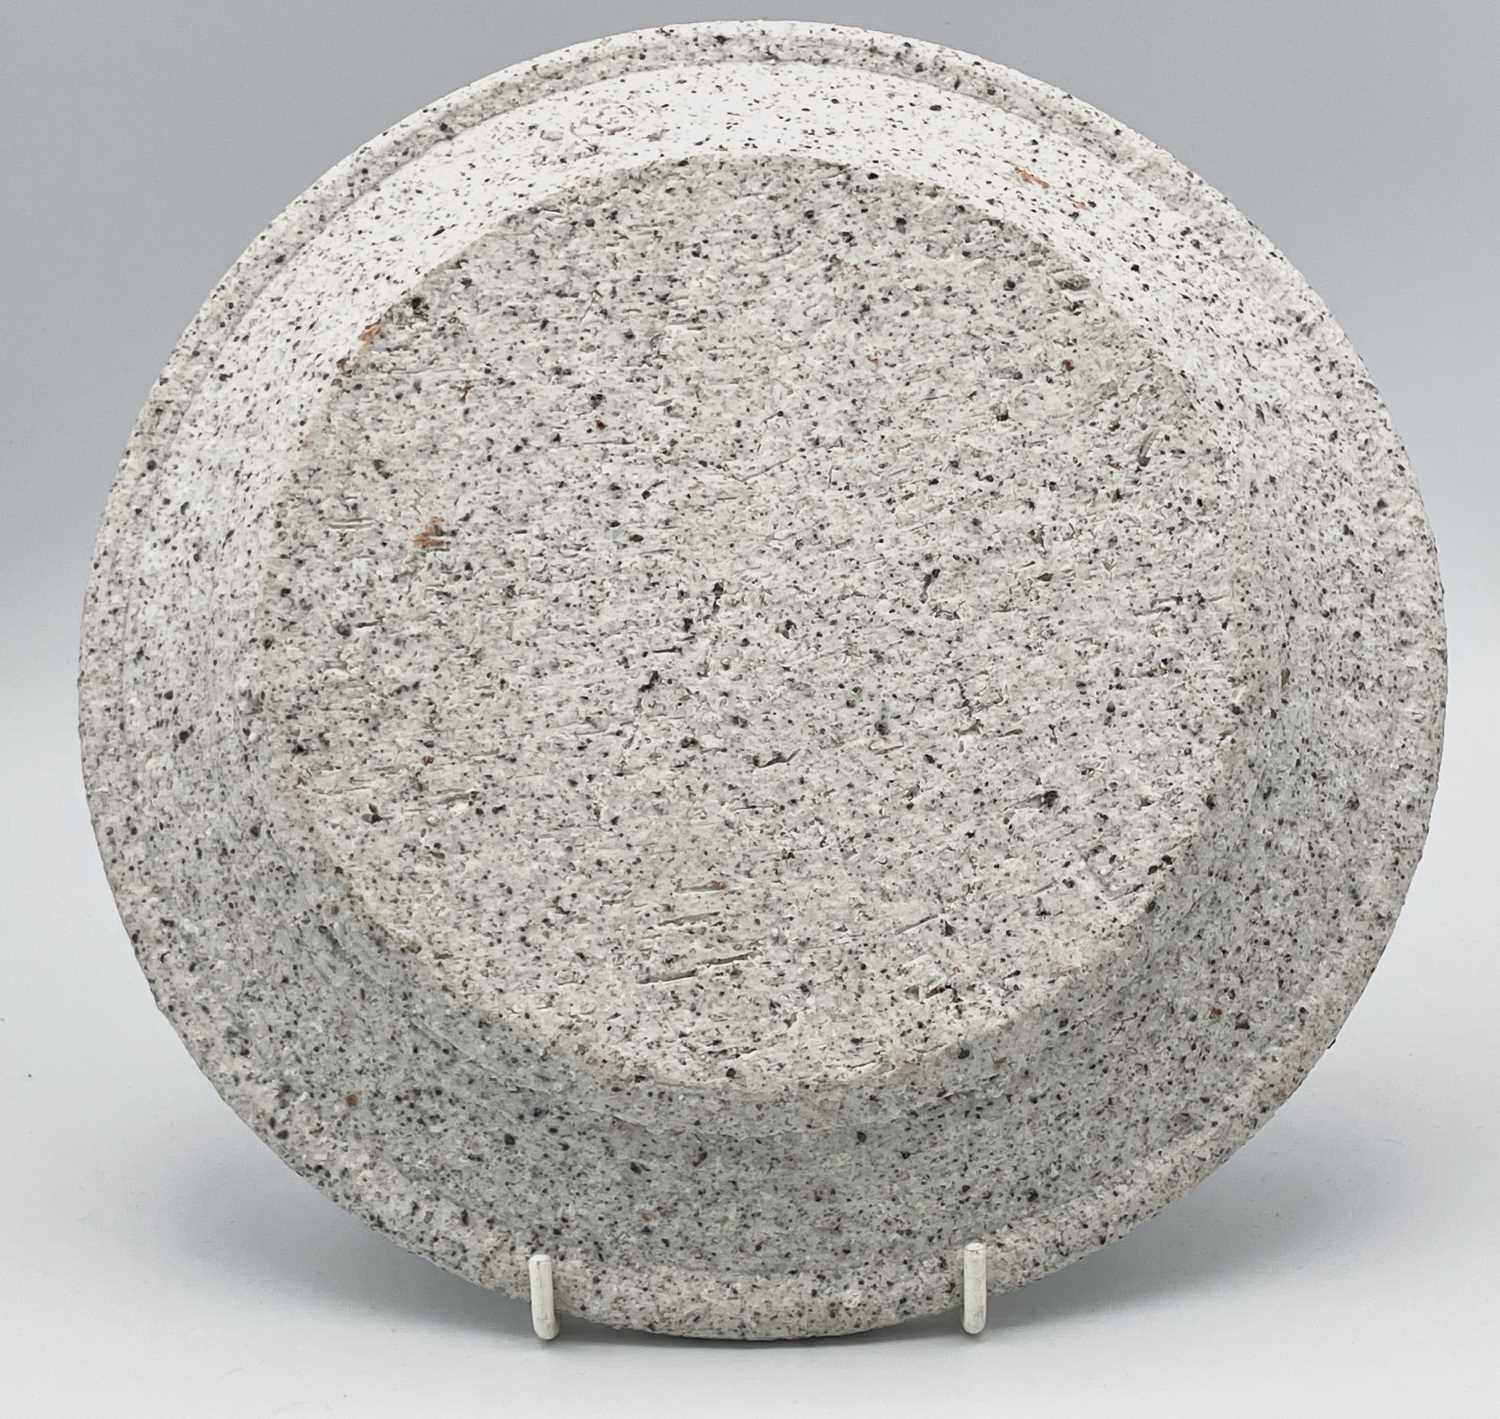 Peter SMITH (1941)A plate made of experimental porcelain with low fire body splatter circa - Image 2 of 5